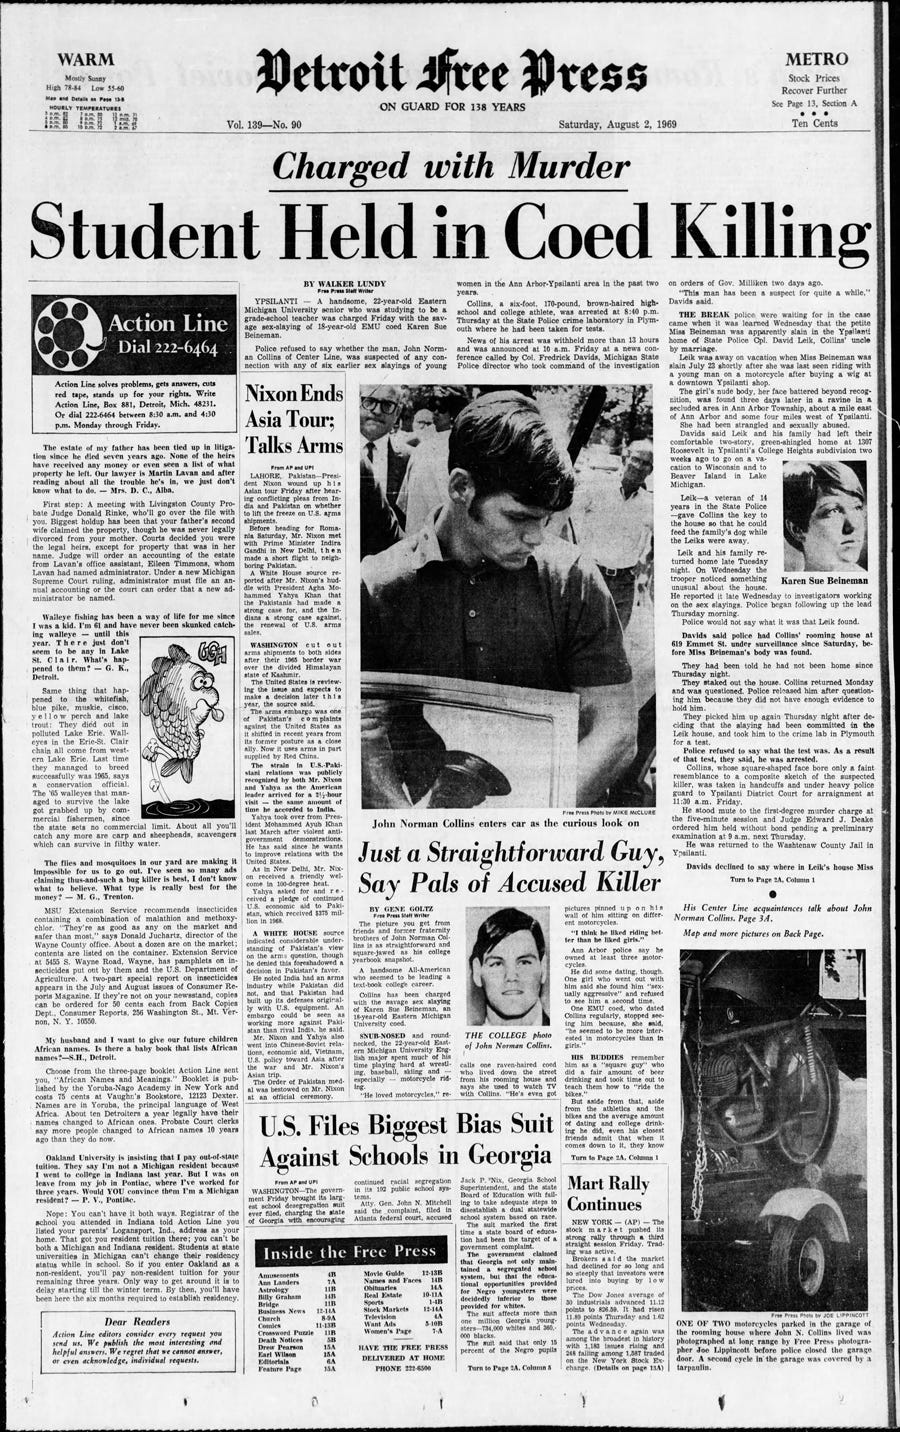 Detroit Free Press, published front page from Aug. 2, 1969.